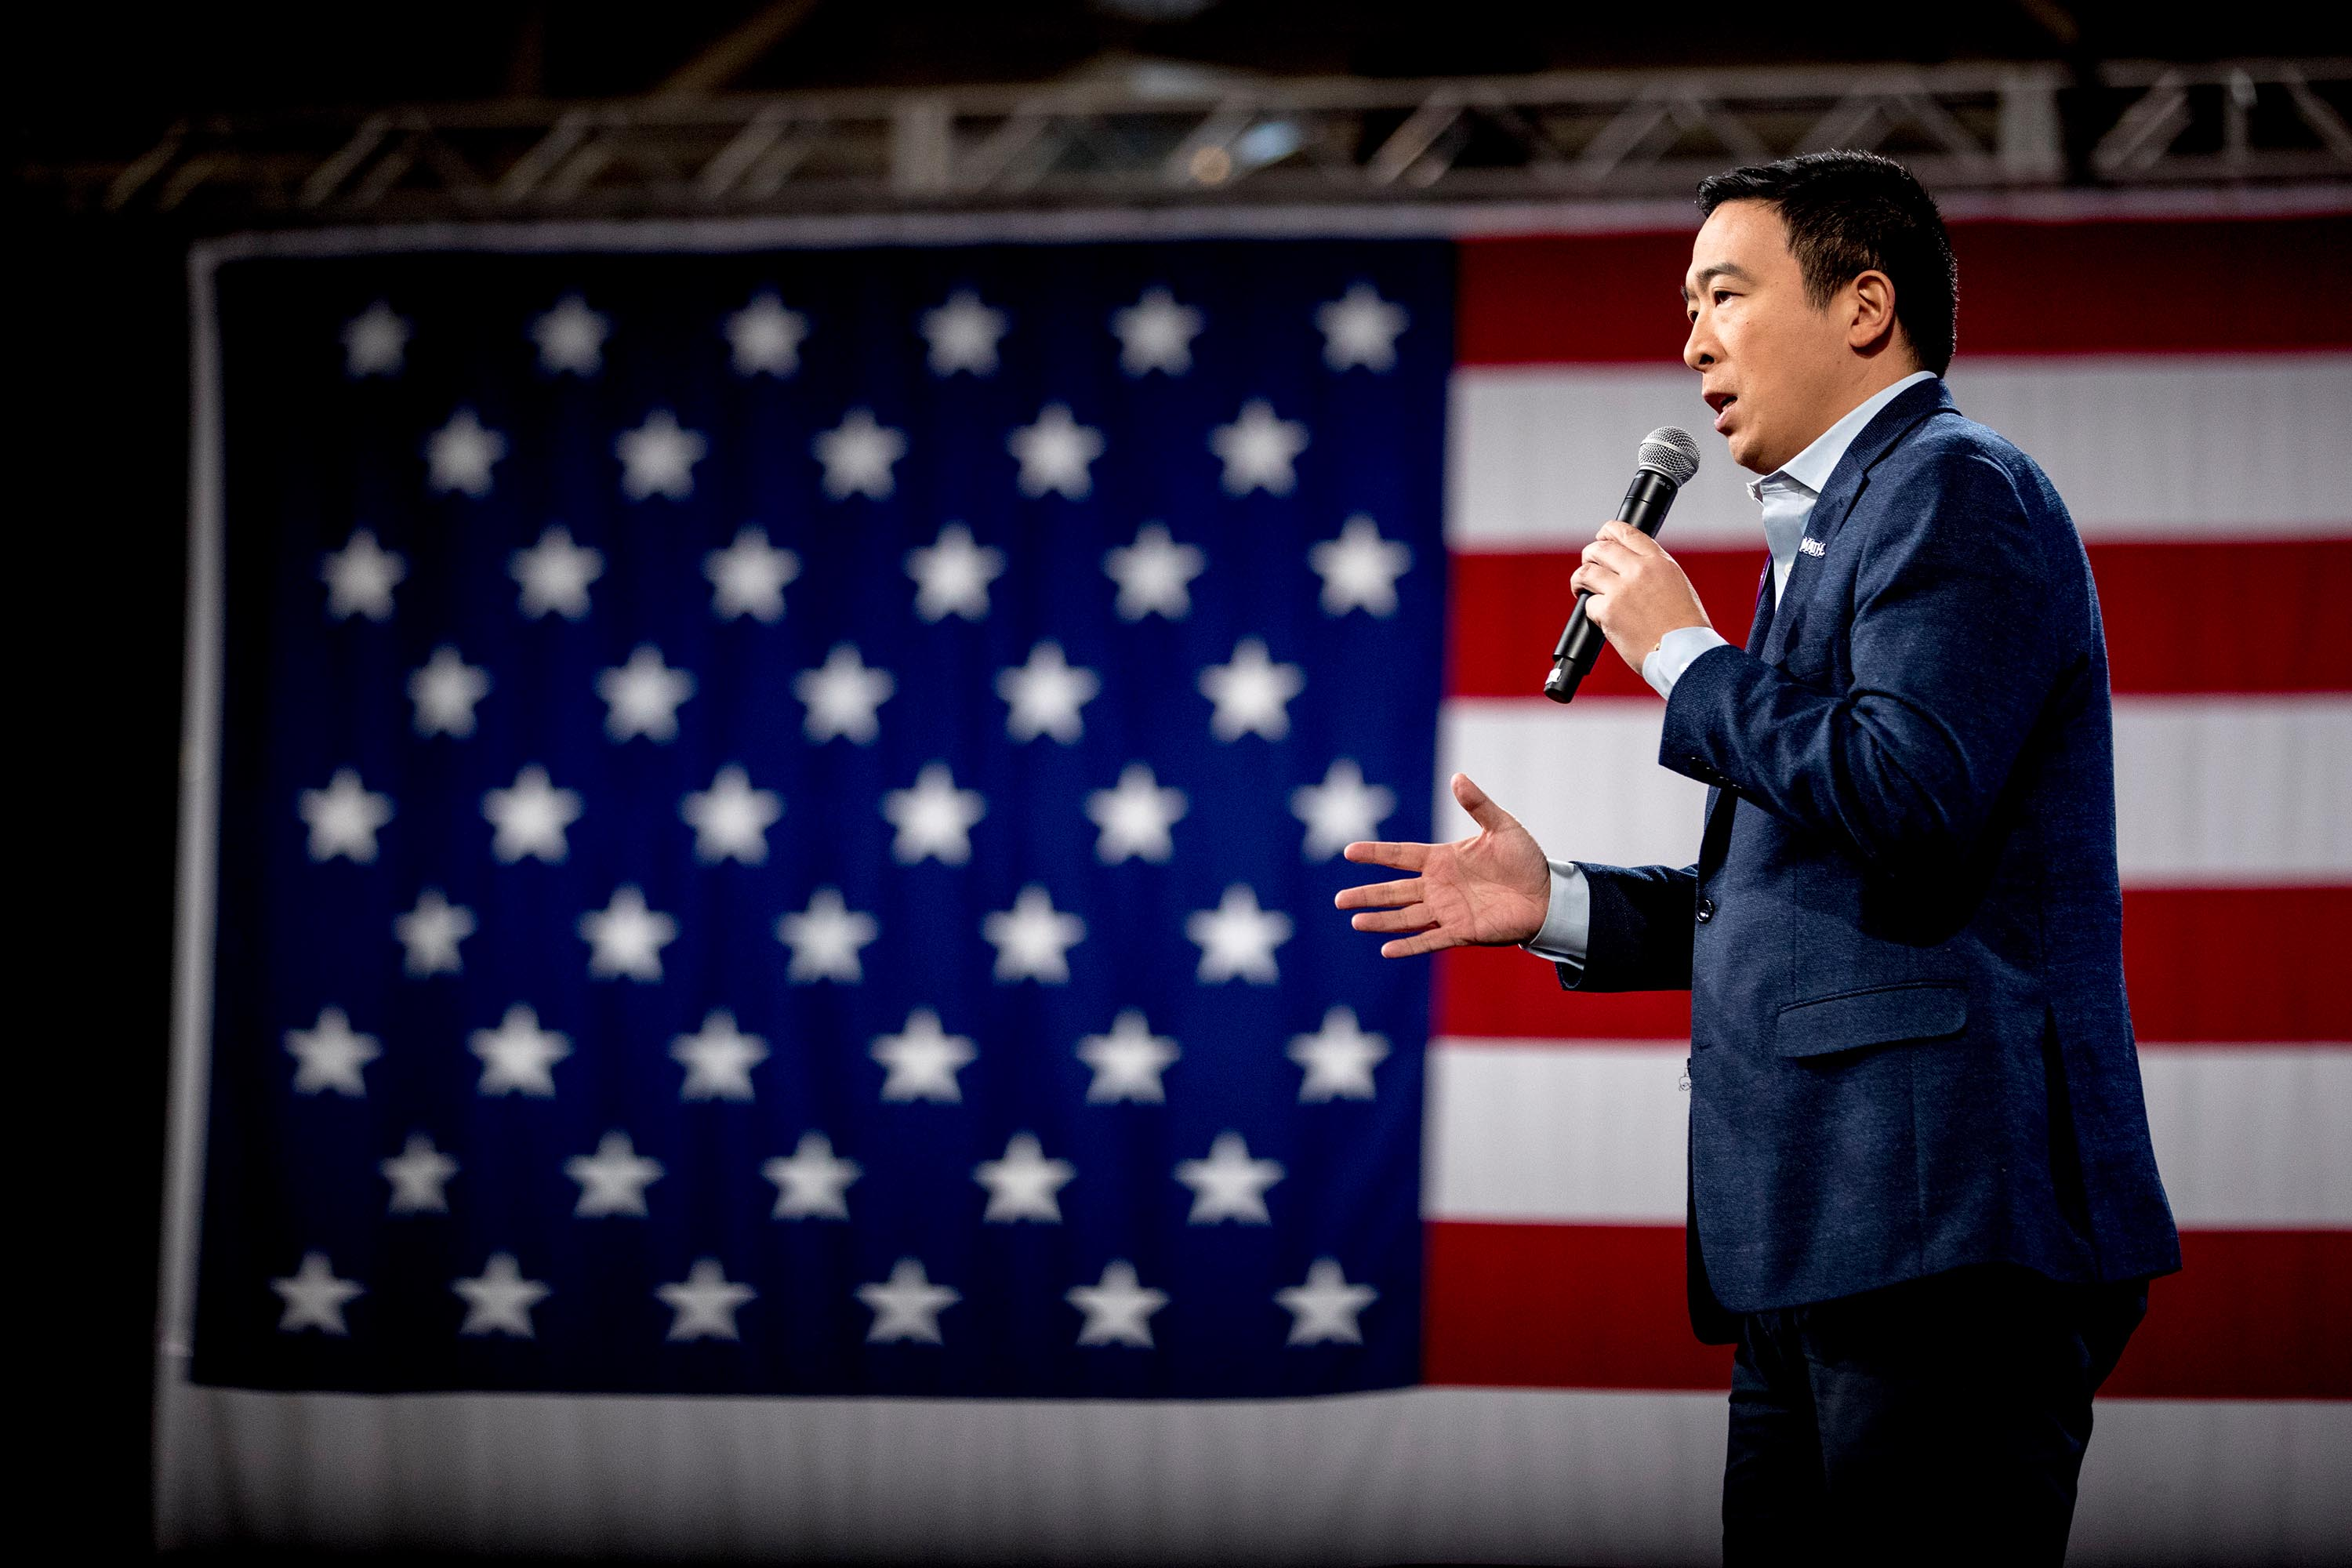 Andrew Yang joins CNN as a political commentator